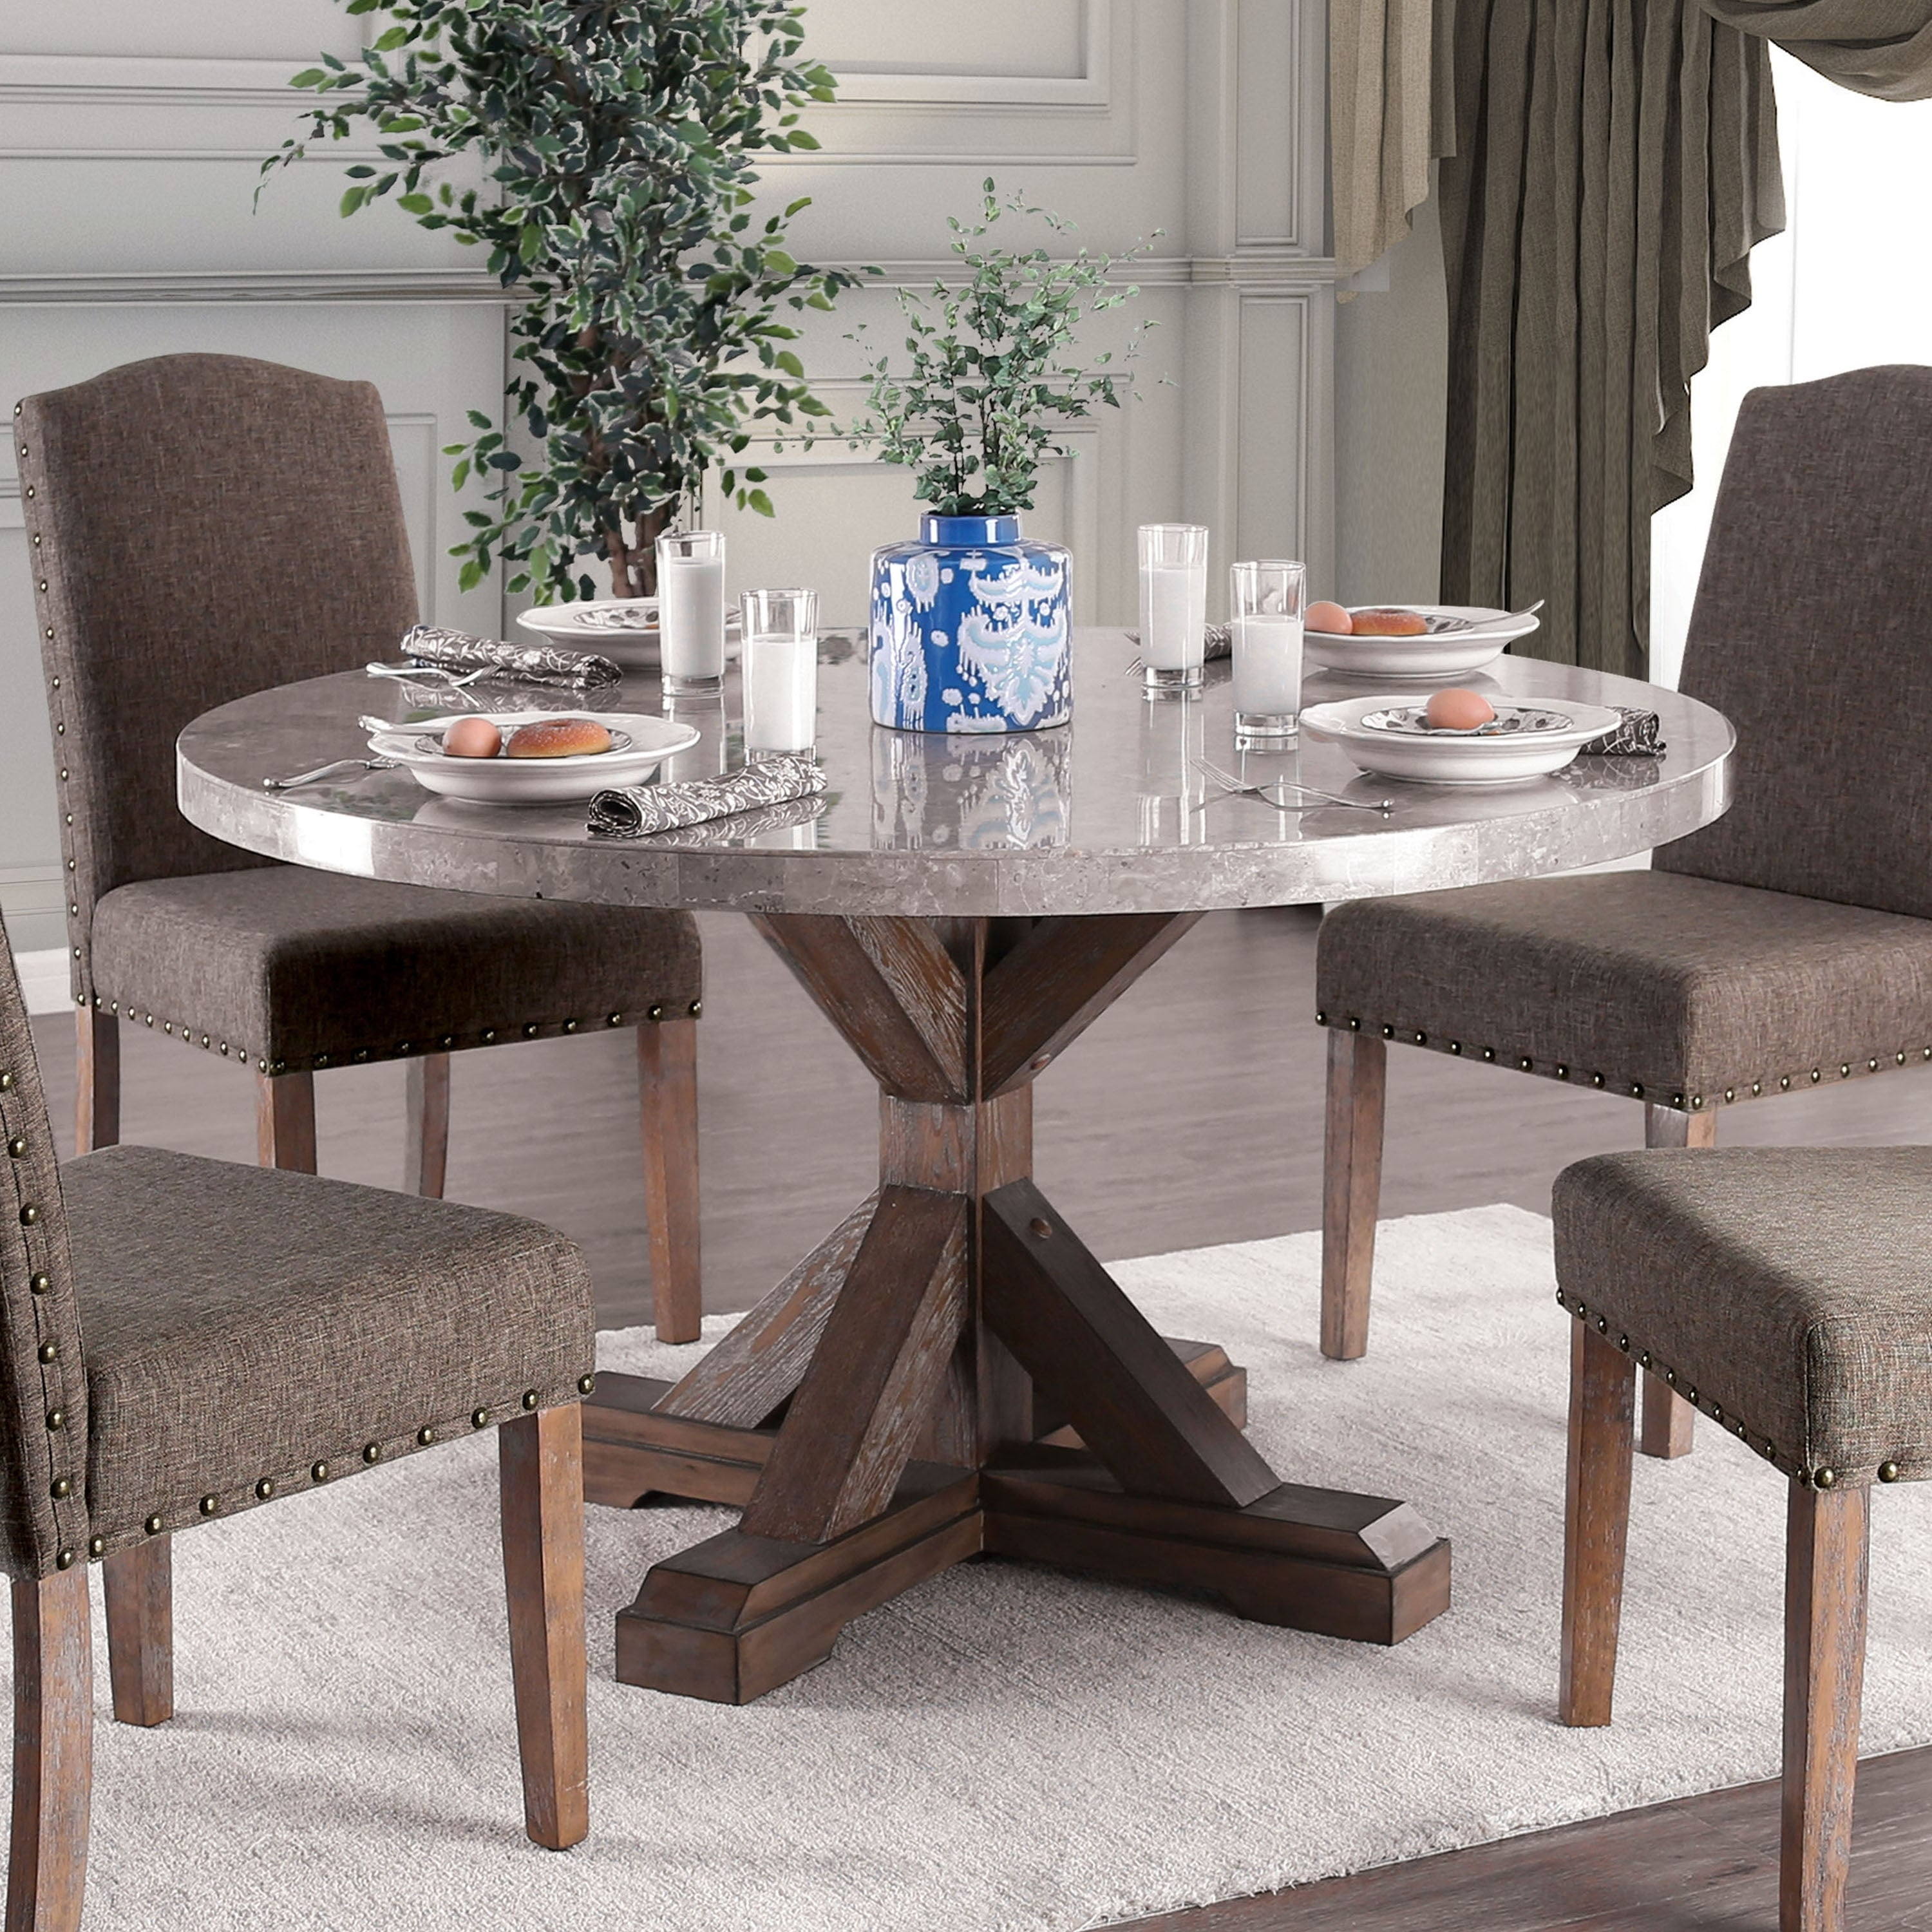 Furniture of America Yoss Rustic Brown 54-inch Marble Top Dining Table -  Natural